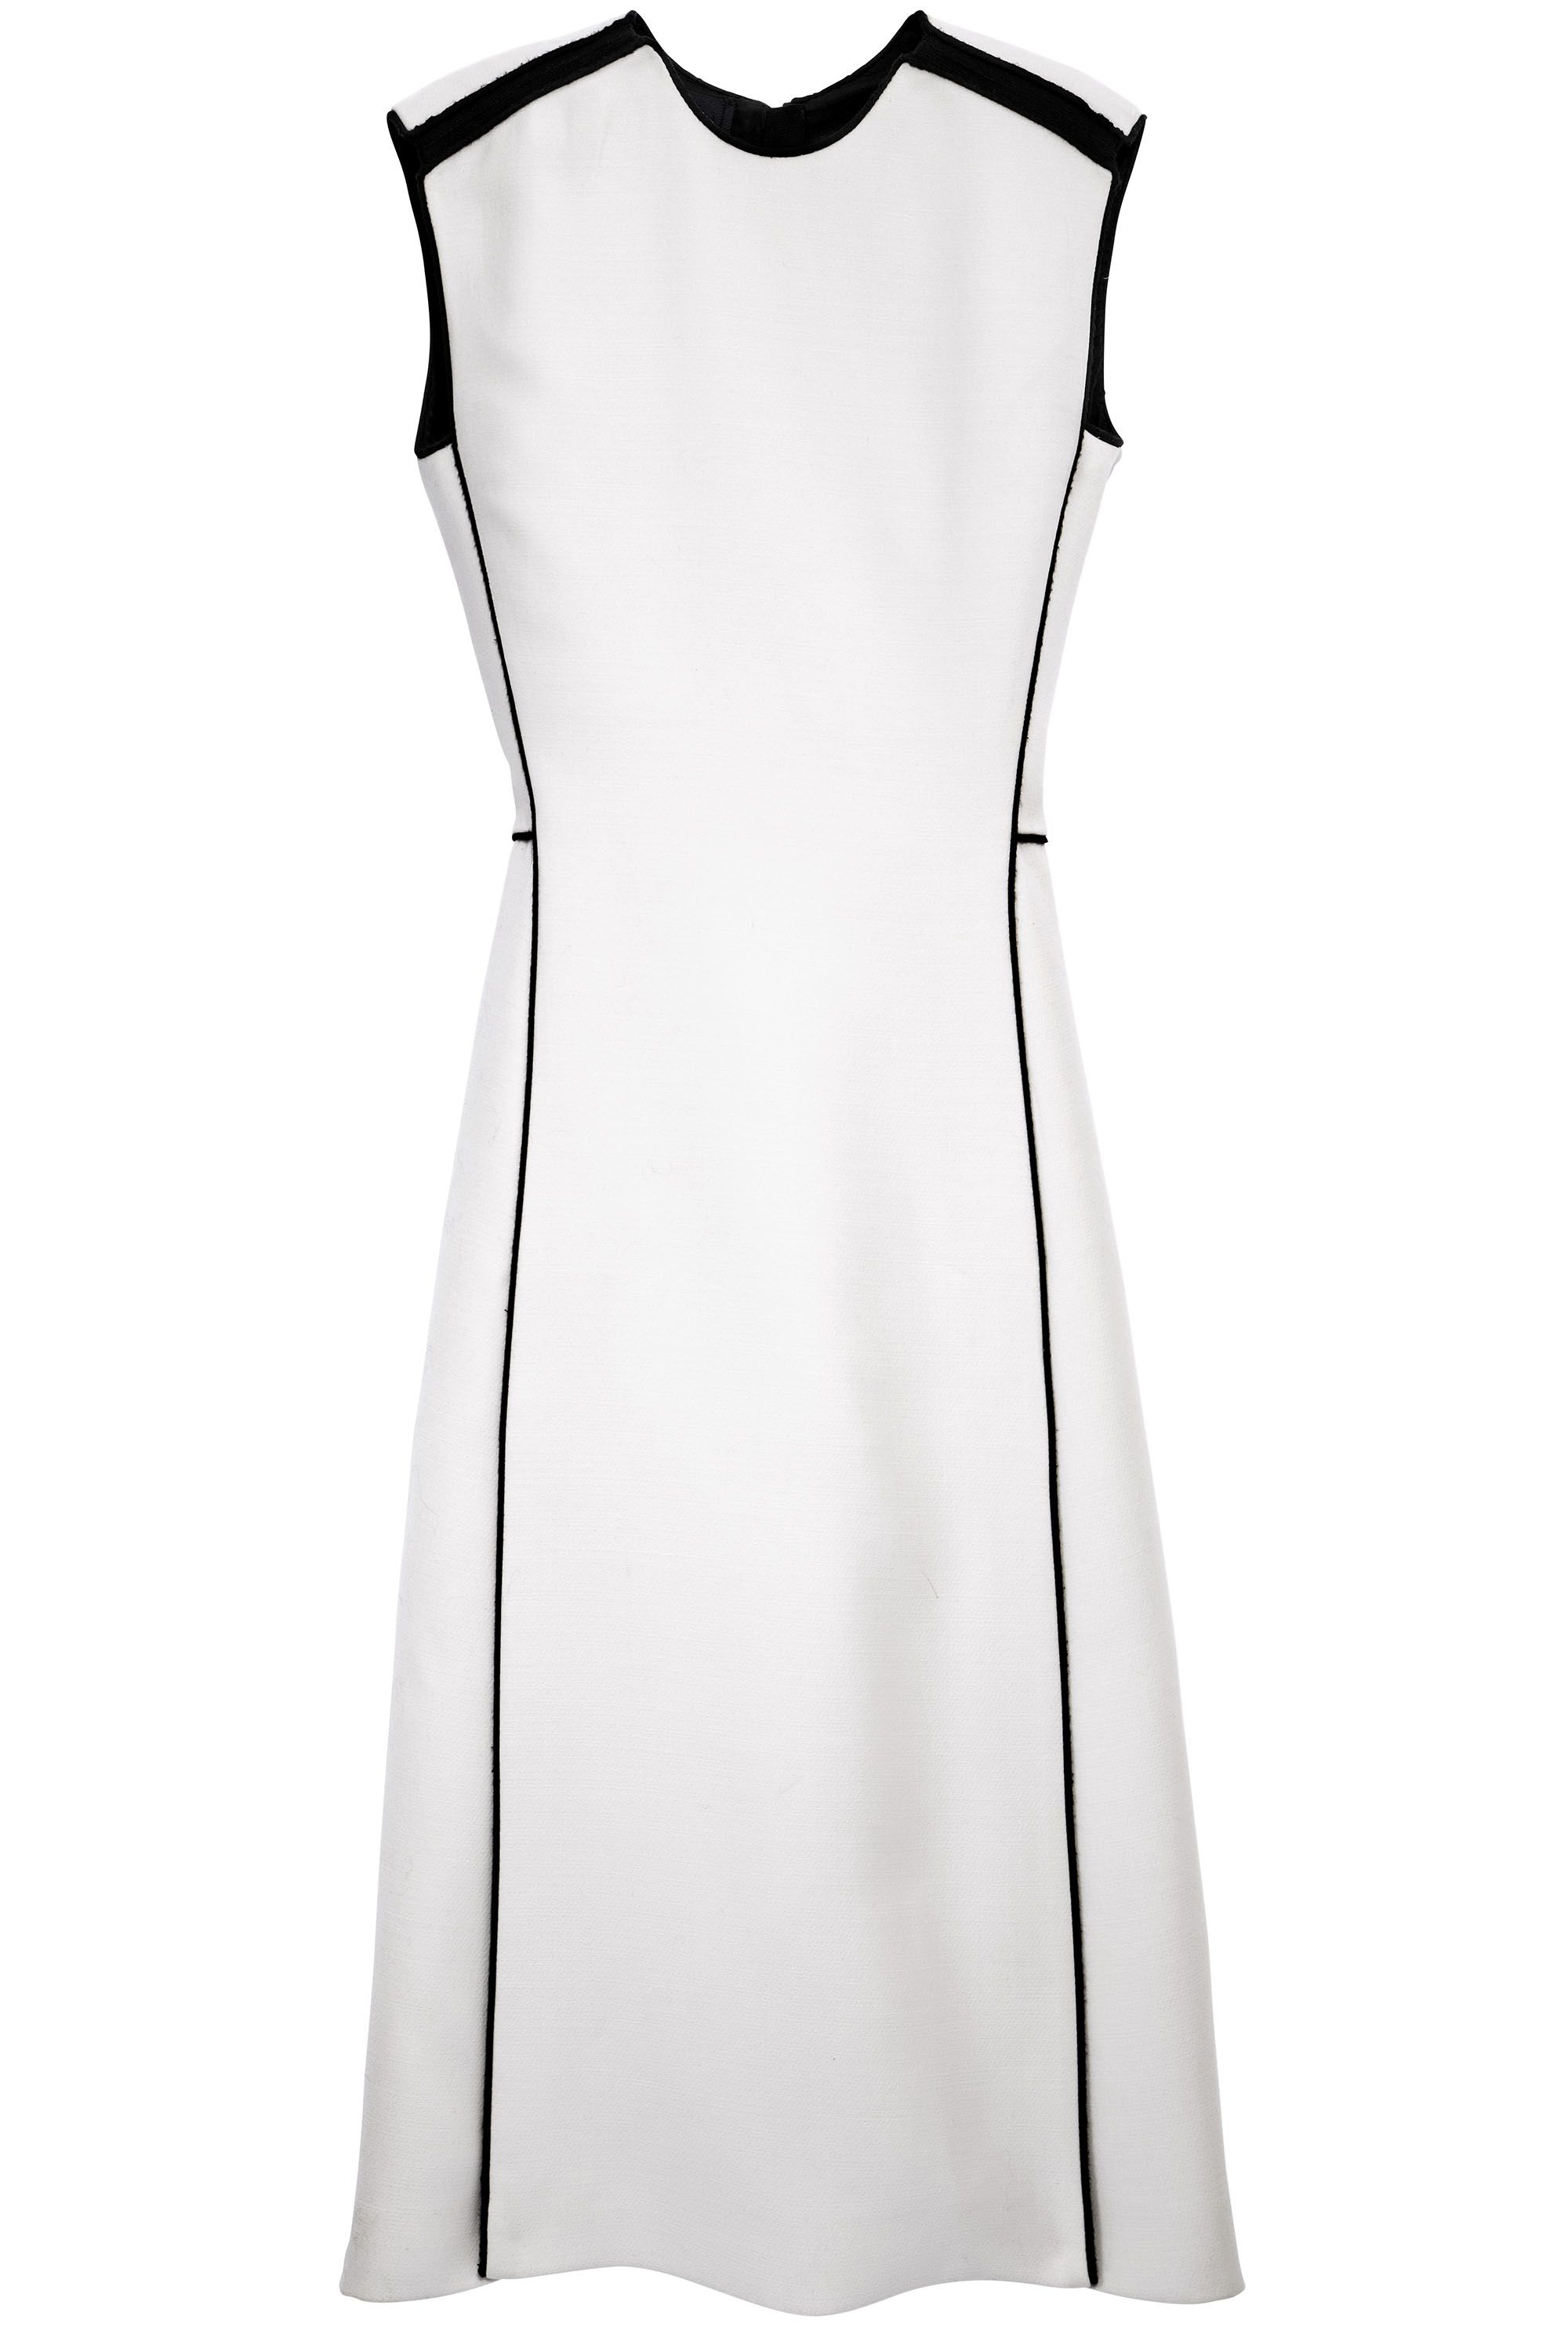 "<strong>Lanvin </strong>dress, $3,290, <a target=""_blank"" href=""https://shop.harpersbazaar.com/designers/lanvin/"">shopBAZAAR.com</a><img src=""http://assets.hdmtools.com/images/HBZ/Shop.svg"" class=""icon shop"">."